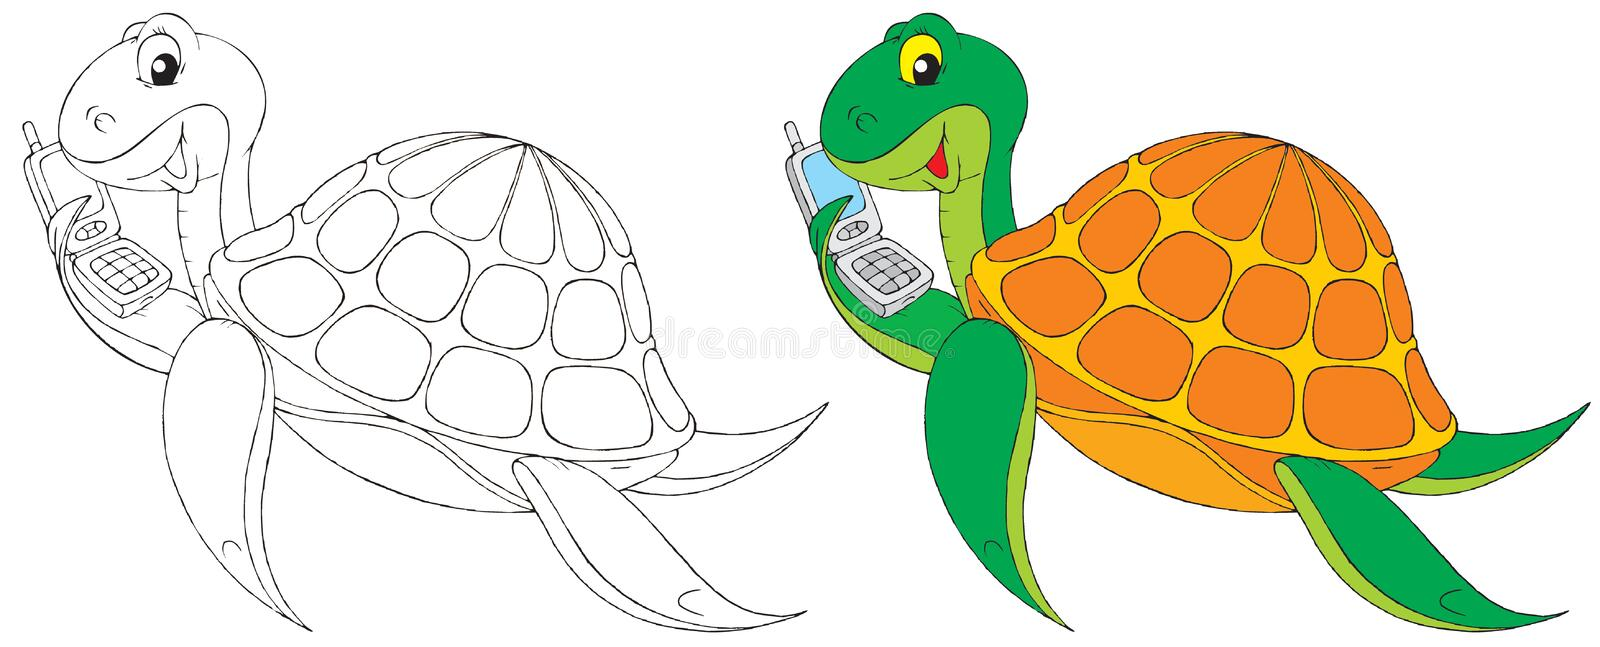 Download Turtle stock illustration. Image of phone, telephone - 12574845